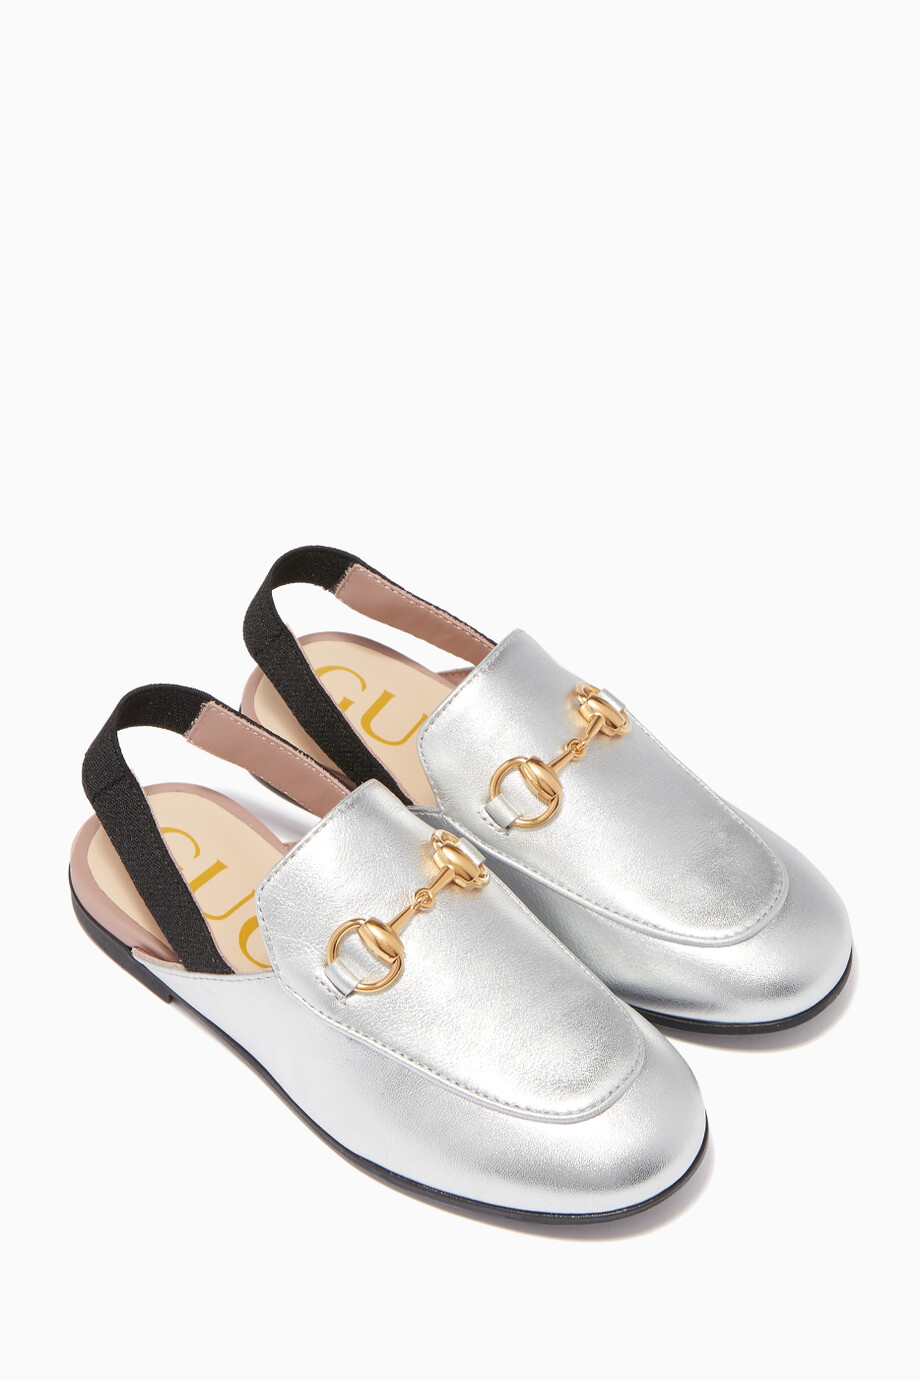 0edca295c Silver Princetown Leather Slippers Silver Princetown Leather Slippers Silver  Princetown Leather Slippers Silver Princetown Leather Slippers. Gucci